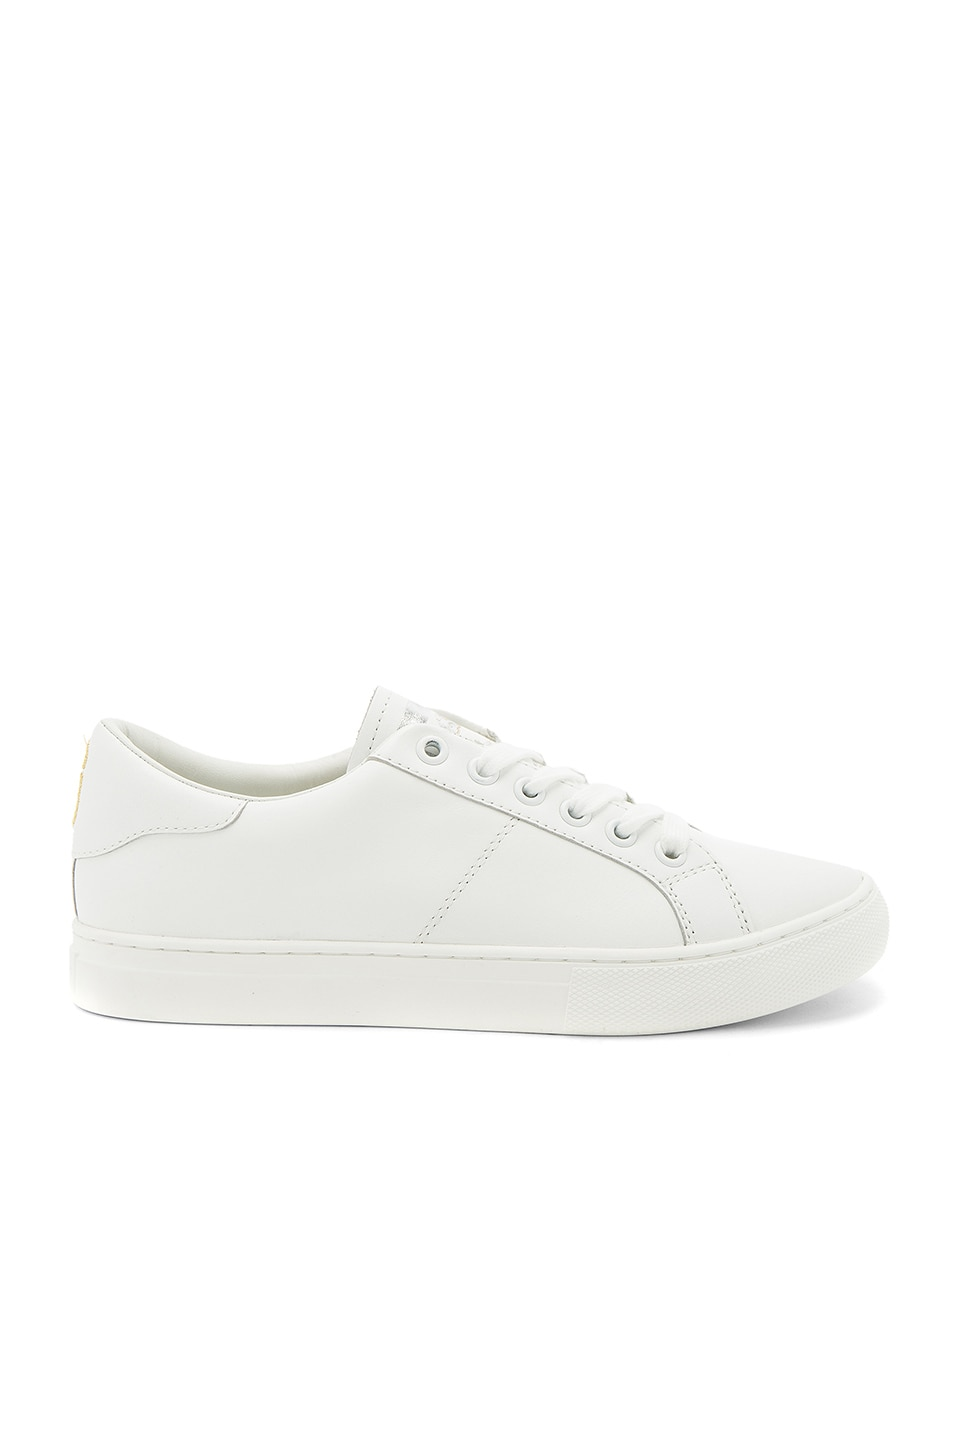 Marc Jacobs Empire Low Top Sneaker in White